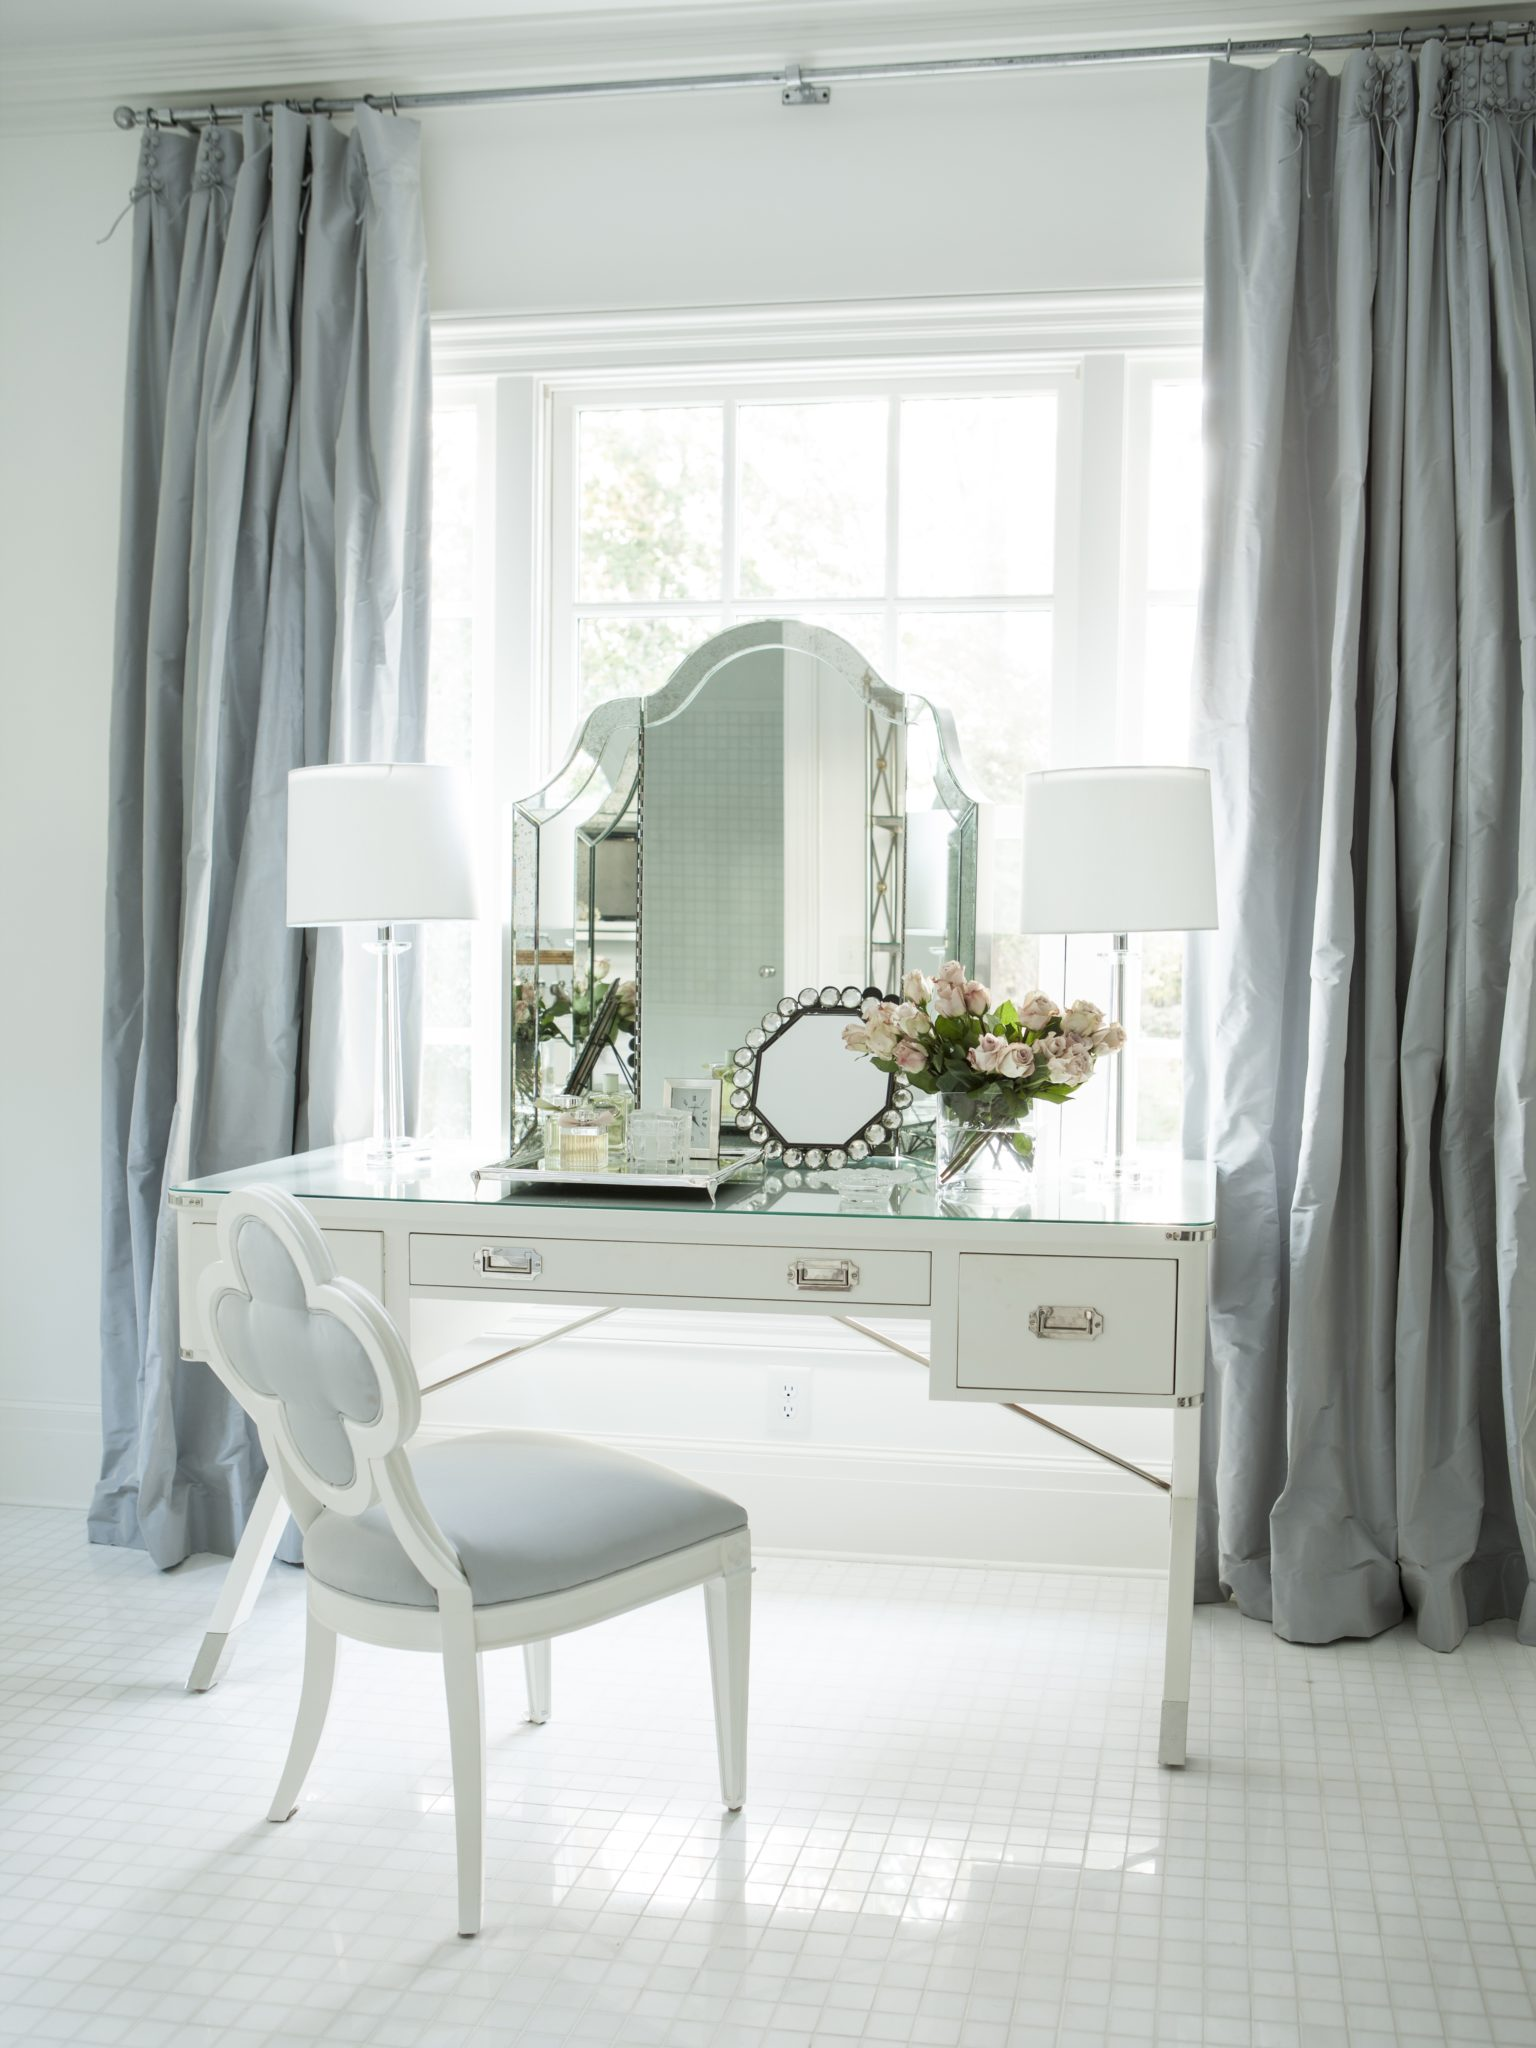 At Home vanity in shades of blue and white by Suzanne Kasler Interiors